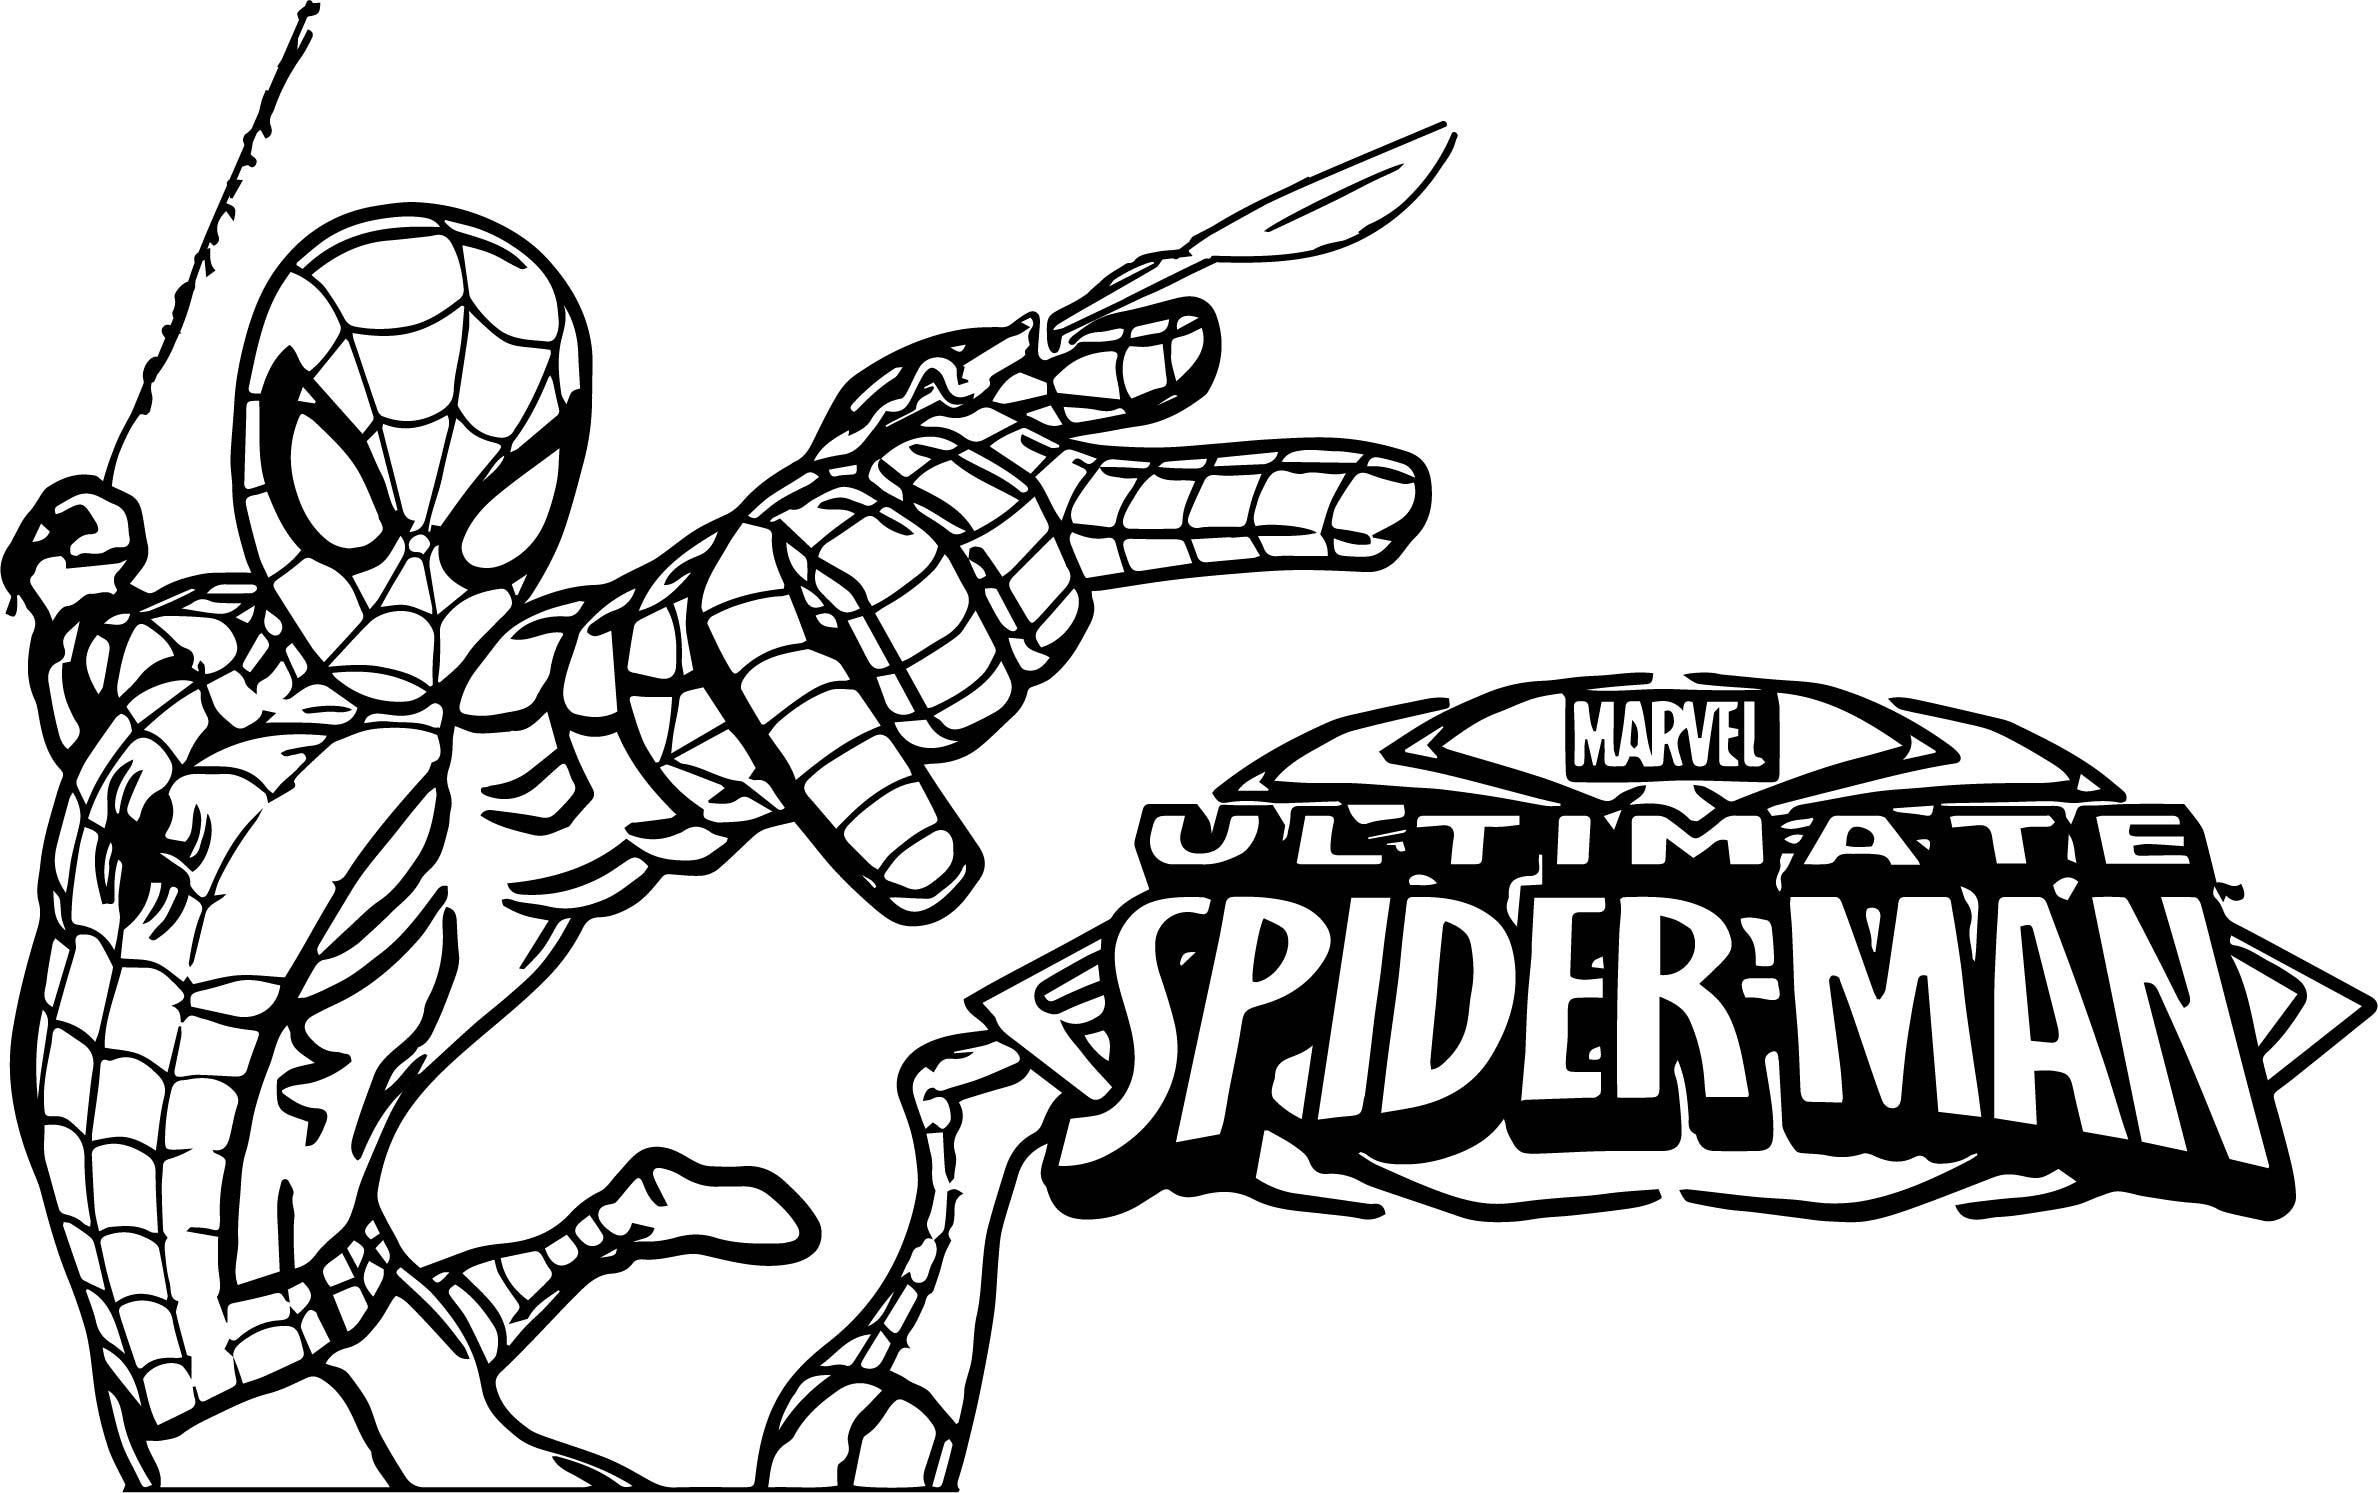 Spider Man Coloring Page WeColoringPage 8  Wecoloringpage.com